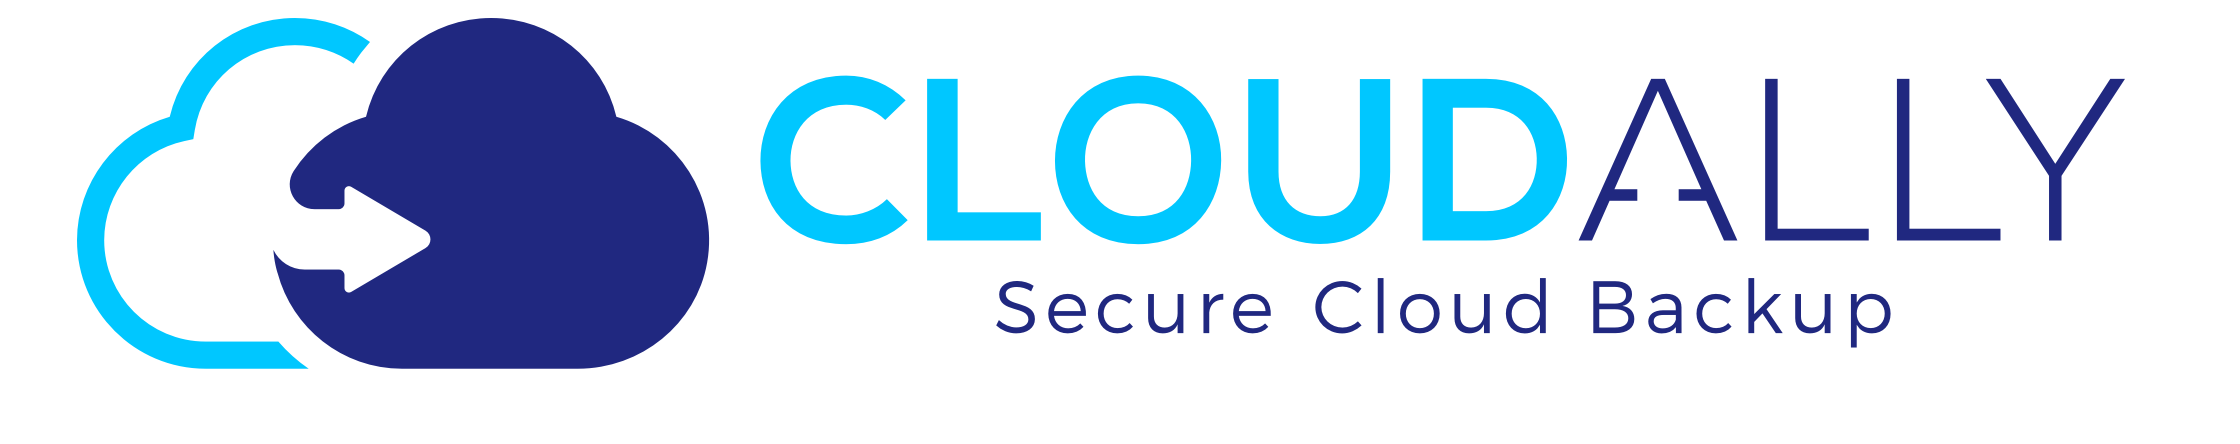 CloudAlly Office 365 Exchange Backup for Business logo